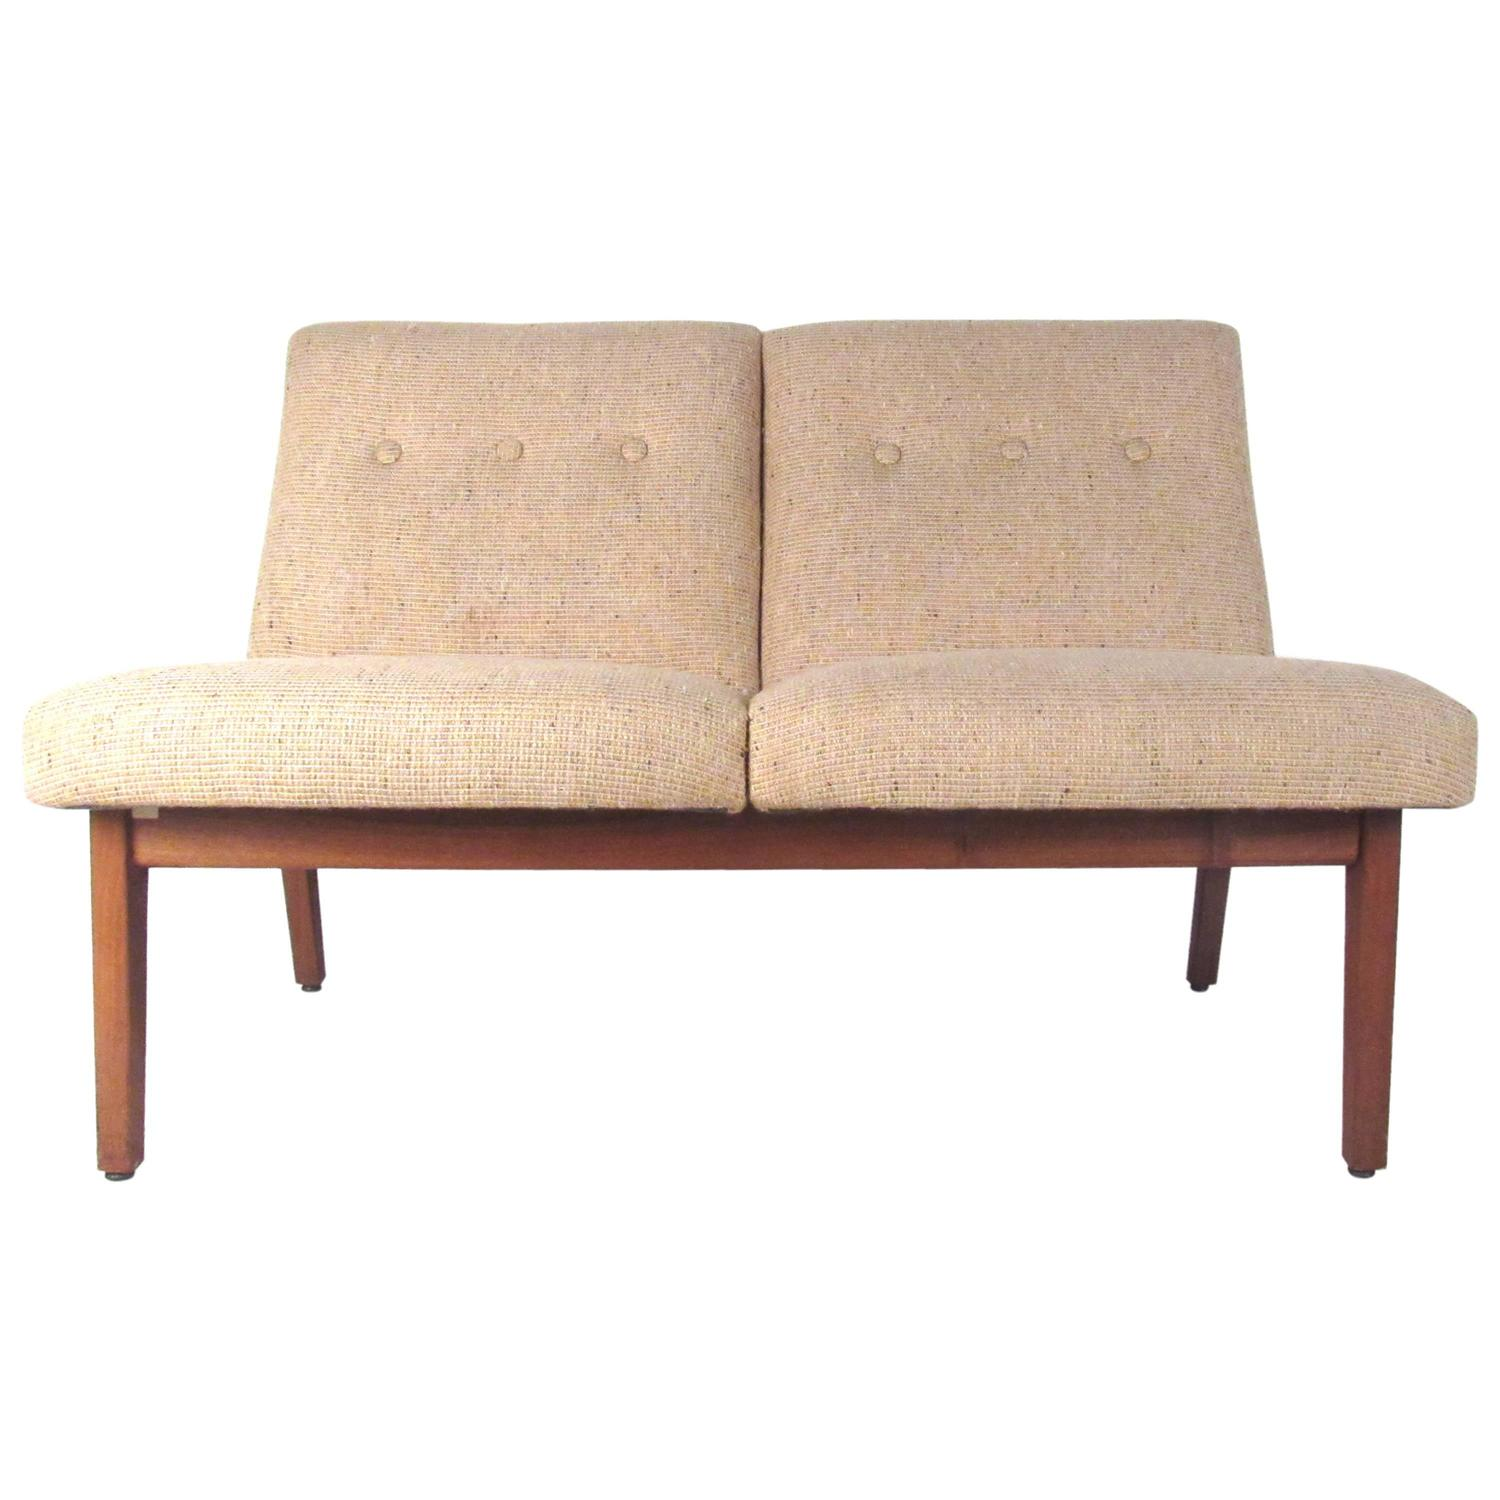 Johnson Chair pany Furniture 3 For Sale at 1stdibs